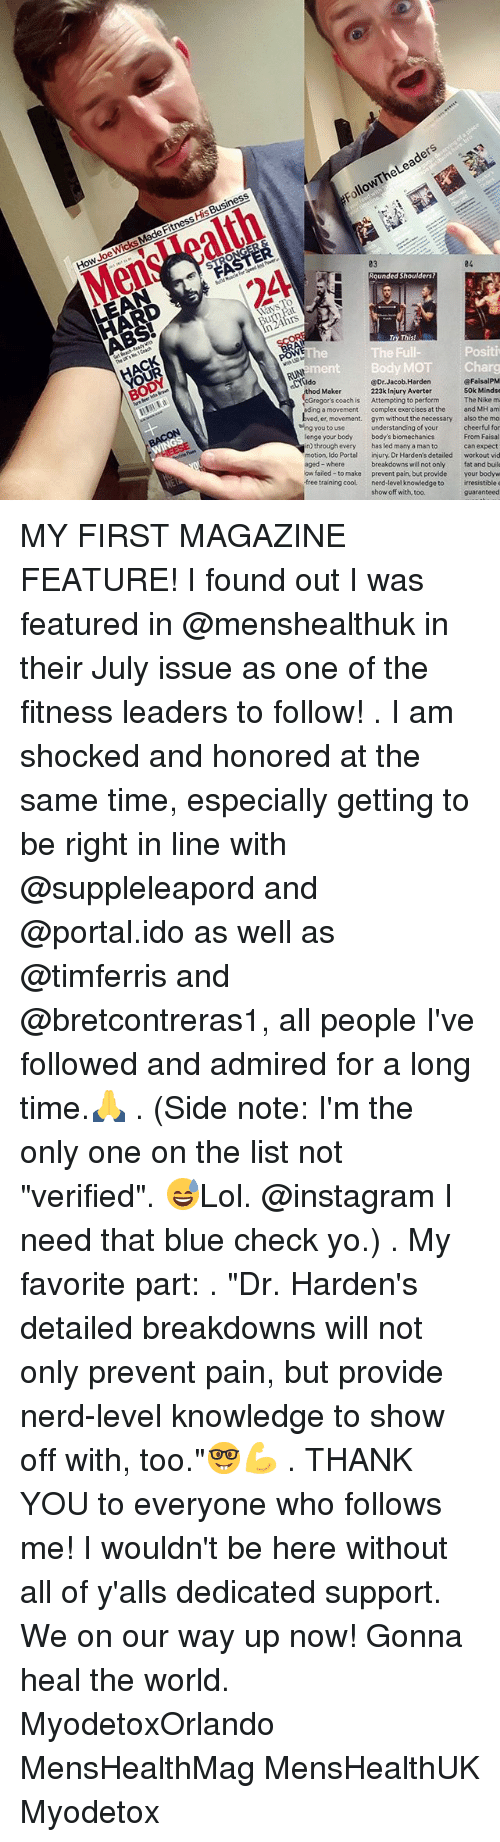 "Complex, Gym, and Instagram: FollowThe Leaders  How Joe Wicks Made Fitness His Business  MensWoalth  2A  03  24.  04  LEAN  Ways l  urn Fat  n24hrs  ACK  OUR  BODY  The Full-  Positi  mentBody MOT  CLldo  RUN  ara  @FaisalPM  50k Mindse  thod Maker  @Dr.Jacob.Harden  Gregor's coach is  ing a movement  ved, er, movement.  223k Injury Averter  Attempting to perform  complex exercises at the  gym without the necessary  The Nike m  and MH am  wing you to use  theThe inse  the ne  understanding of your  has led many a man to  injury. Dr Harden's detailed  also the mo  lenge your body  in) through every  motion, Ido Portal  body's biomechanics  cheerful for  From Faisal  can expect  workout vid  aged-where  breakdowns will not only  prevent pain, but provide  ow failed-to make  your bodyw  free training cool. nerd-level knowledge to irresistible e  fat and buil  show off with, too.  guaranteed MY FIRST MAGAZINE FEATURE! I found out I was featured in @menshealthuk in their July issue as one of the fitness leaders to follow! . I am shocked and honored at the same time, especially getting to be right in line with @suppleleapord and @portal.ido as well as @timferris and @bretcontreras1, all people I've followed and admired for a long time.🙏 . (Side note: I'm the only one on the list not ""verified"". 😅Lol. @instagram I need that blue check yo.) . My favorite part: . ""Dr. Harden's detailed breakdowns will not only prevent pain, but provide nerd-level knowledge to show off with, too.""🤓💪 . THANK YOU to everyone who follows me! I wouldn't be here without all of y'alls dedicated support. We on our way up now! Gonna heal the world. MyodetoxOrlando MensHealthMag MensHealthUK Myodetox"